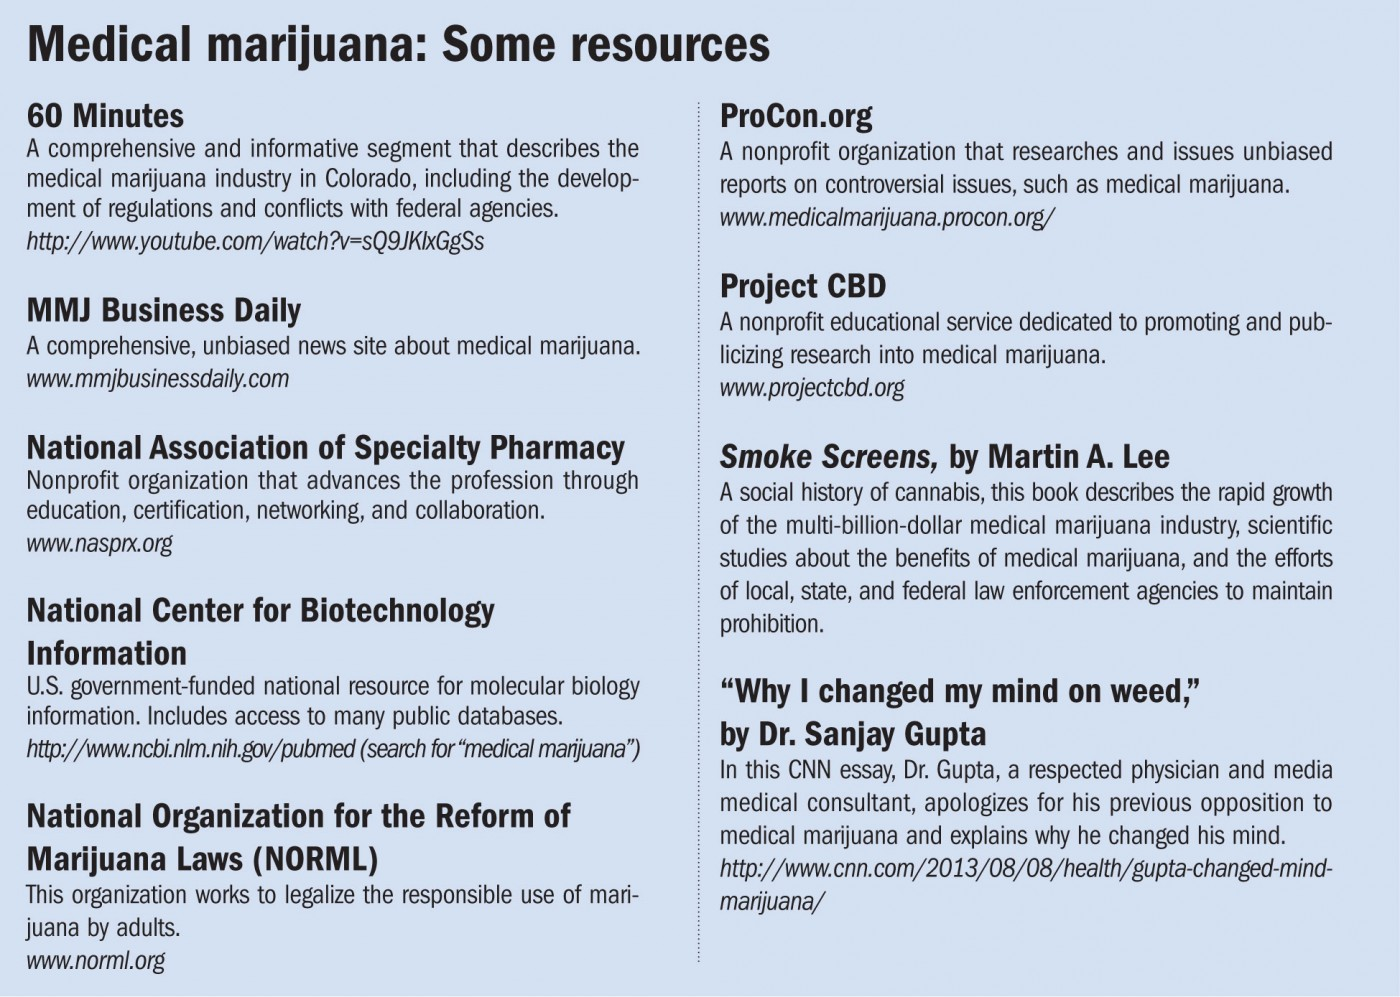 005 Essay Example Legalizing Marijuana Should Medical Legalized You Establ Drugs Dreaded Outline Persuasive Titles 1400